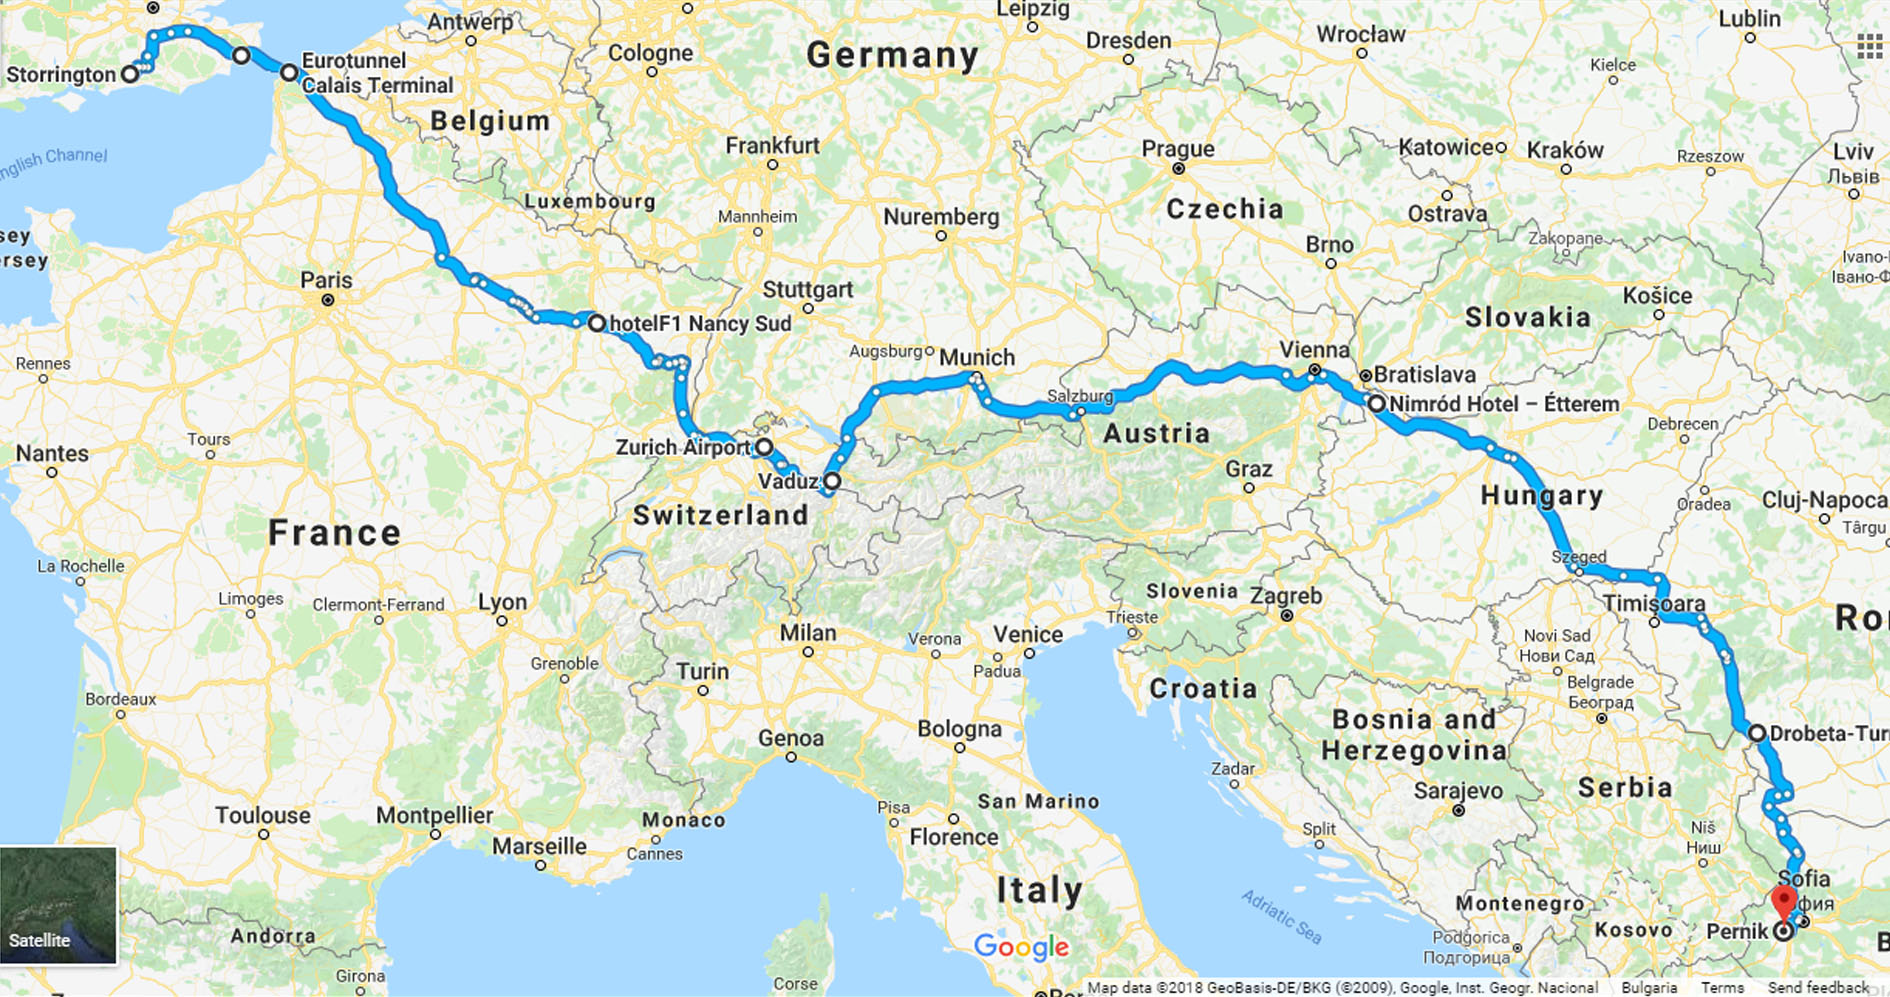 Our route to Bulgaria